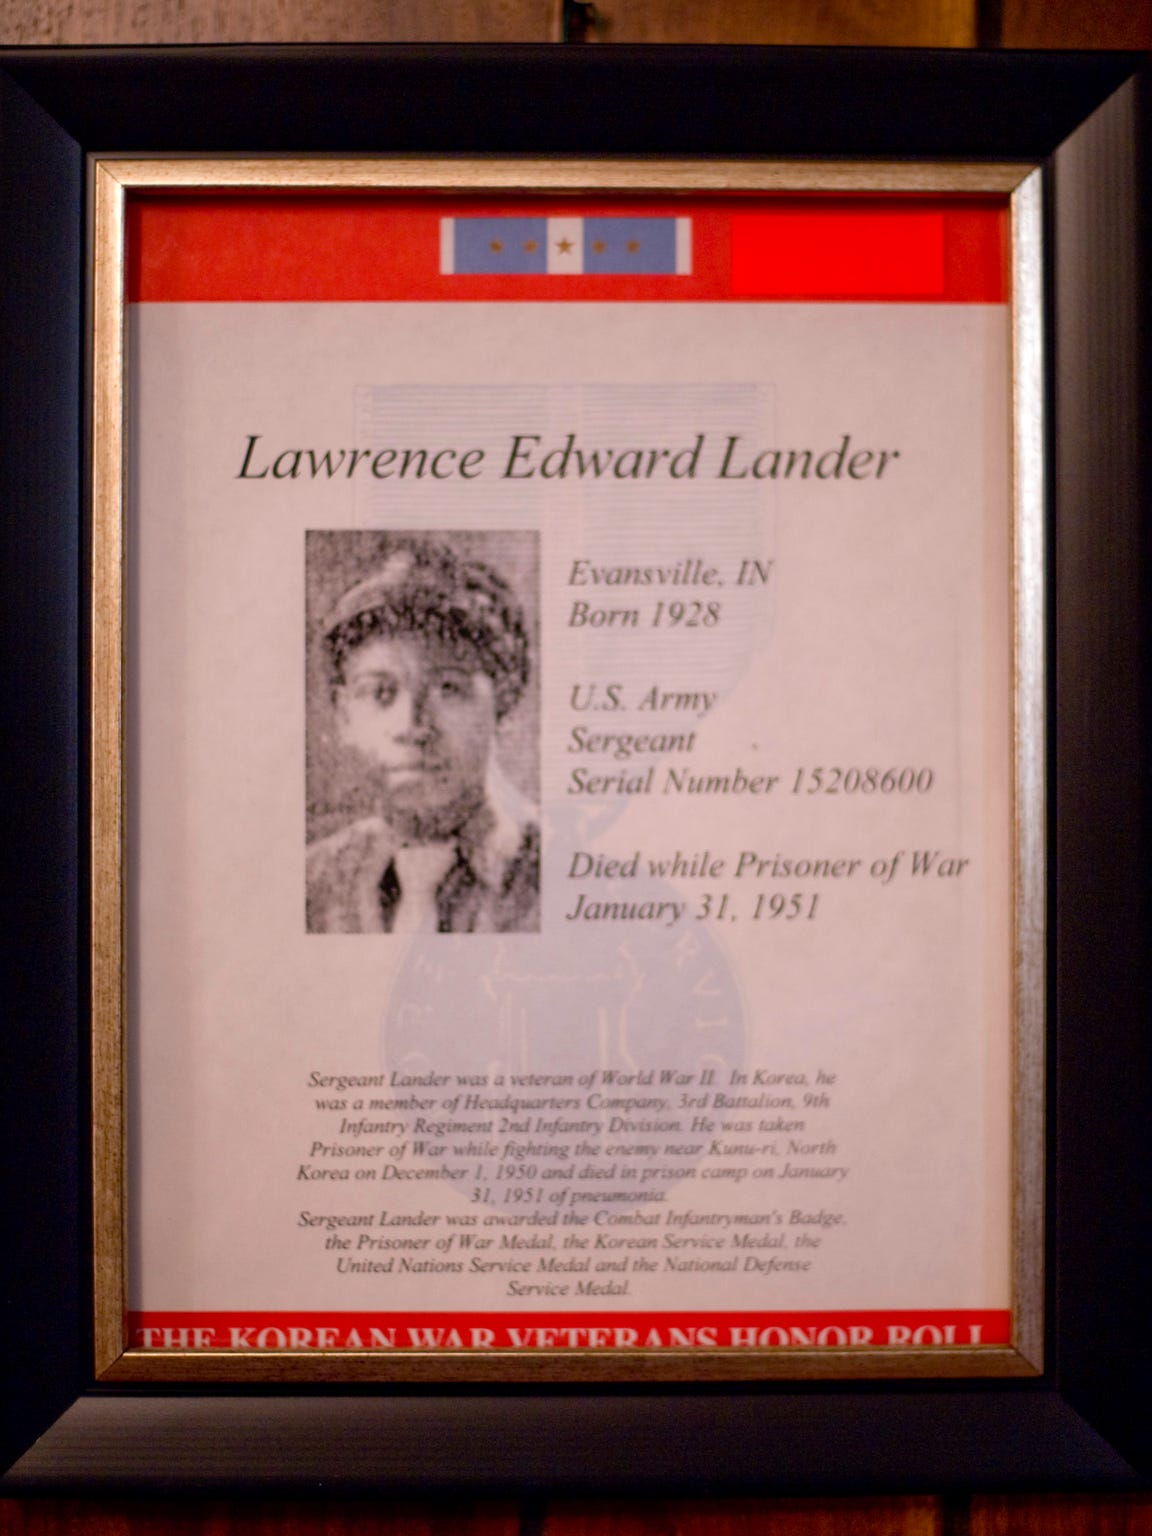 U.S. Army Sgt. Lawrence Edward Lander died while a